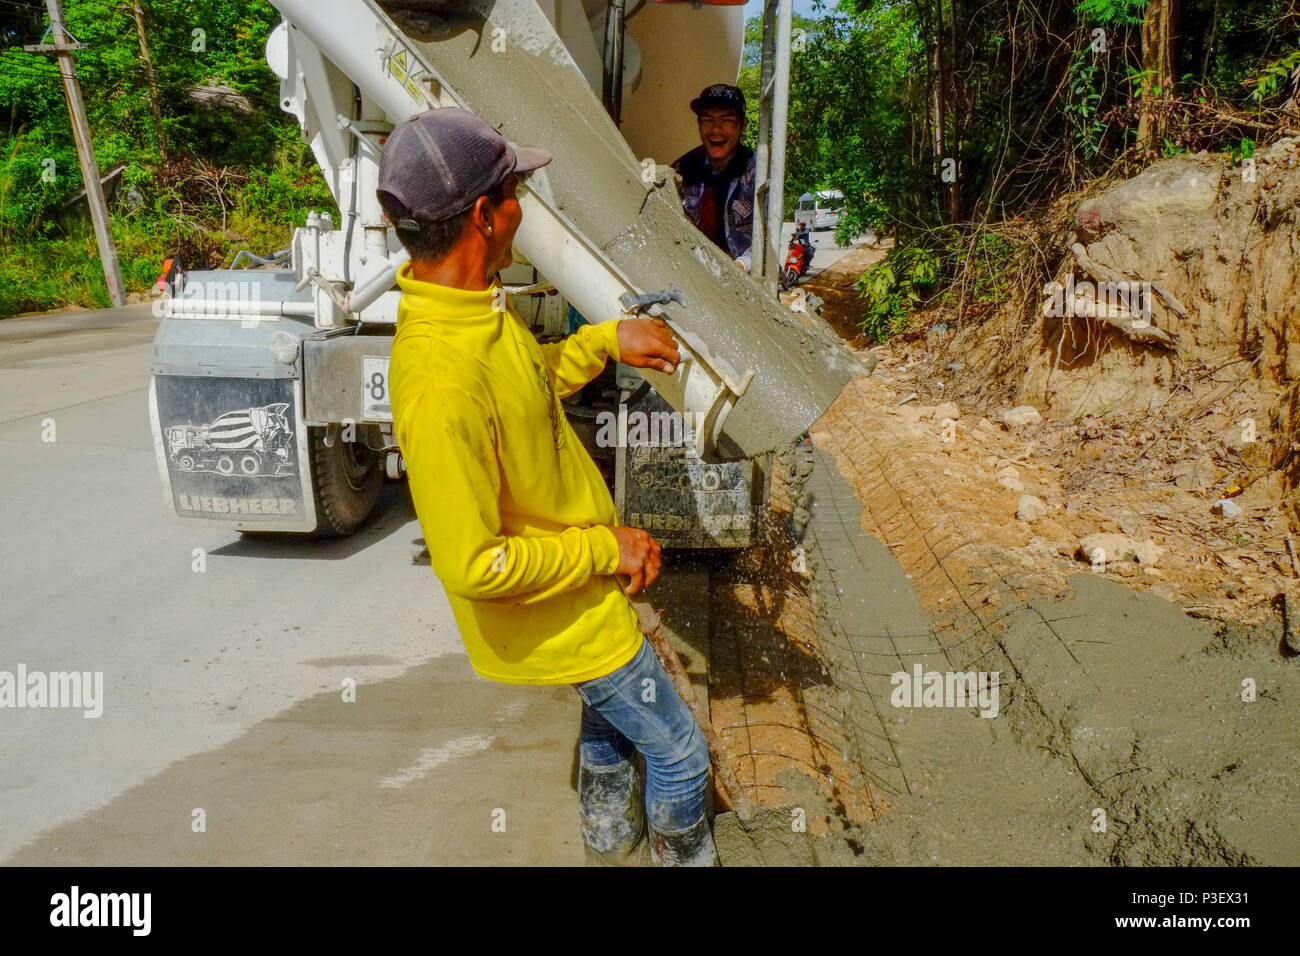 Construction Workers from Myanmar are building new roads through the jungles covering the mountains of the Thai island Koh Phangan, Thailand - Stock Image